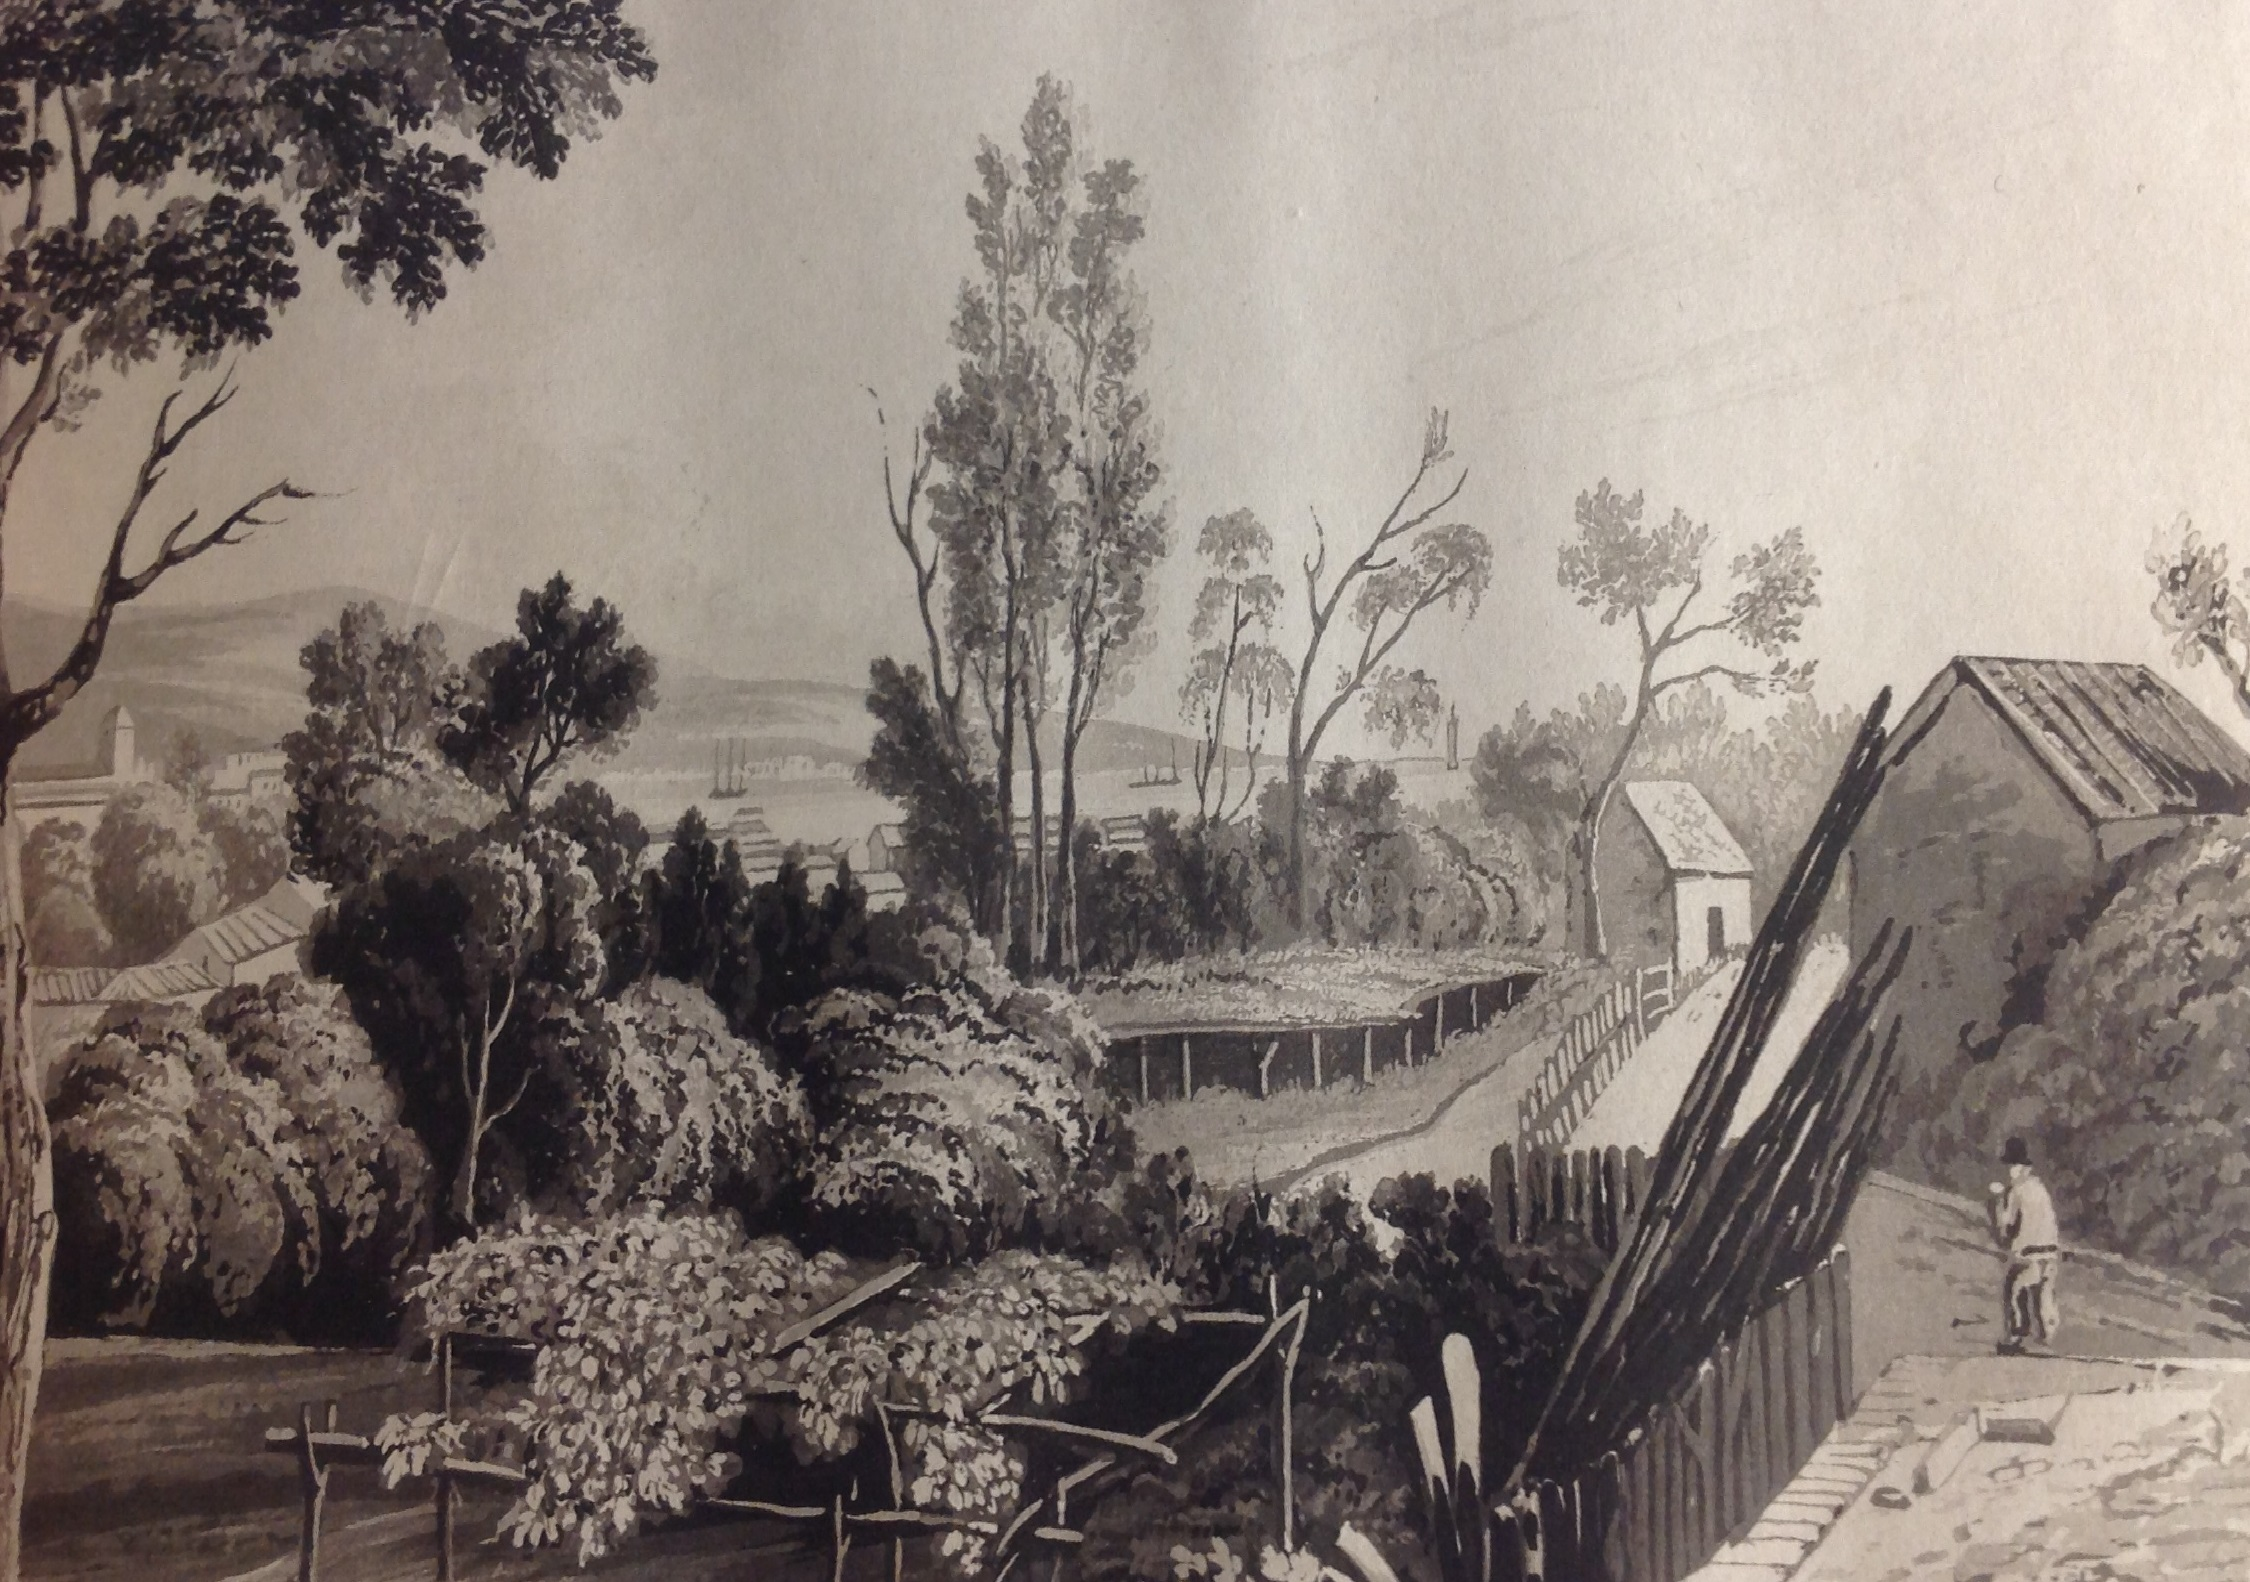 View from Maria Graham's house. Bodleian libraries, Oxford, 4° R 56 Jur